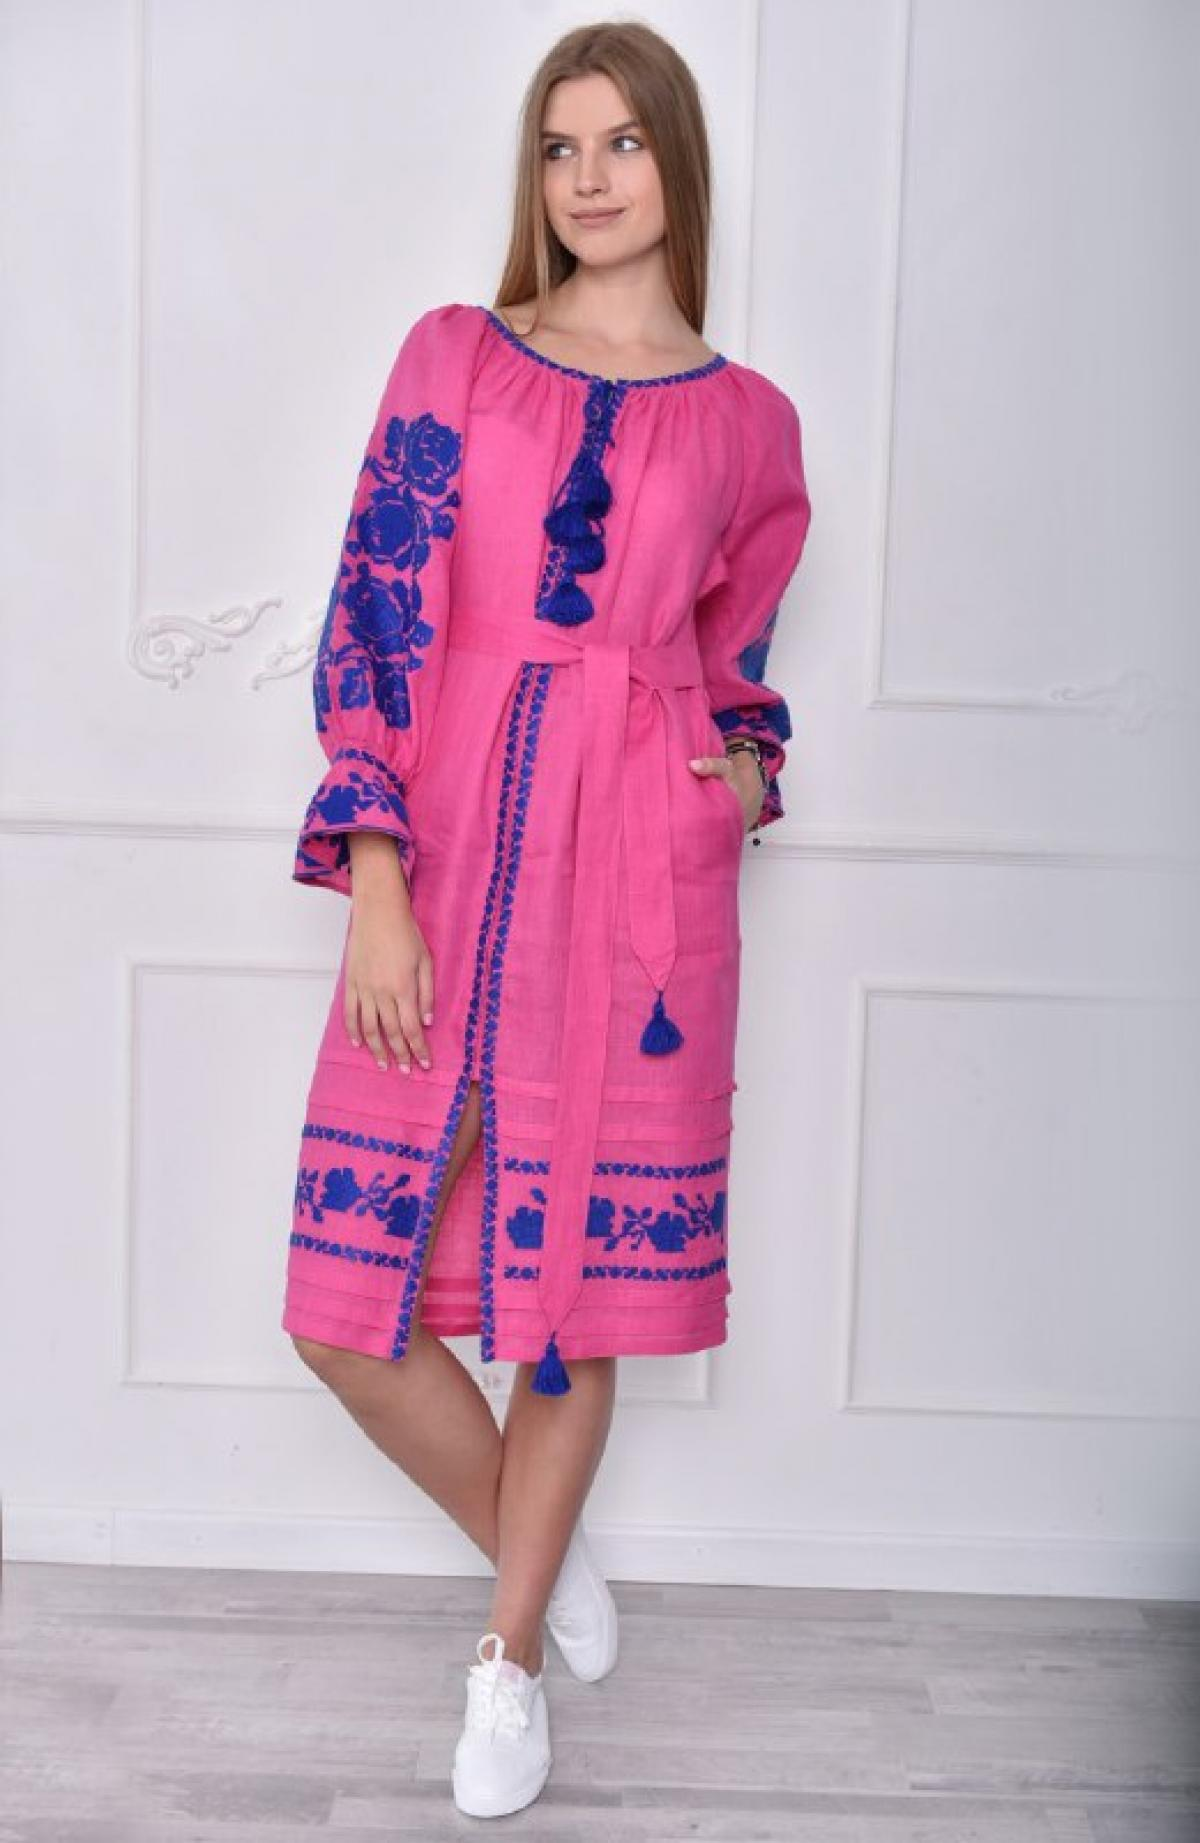 Bright pink dress with blue embroidery. Photo №1. | Narodnyi dim Ukraine